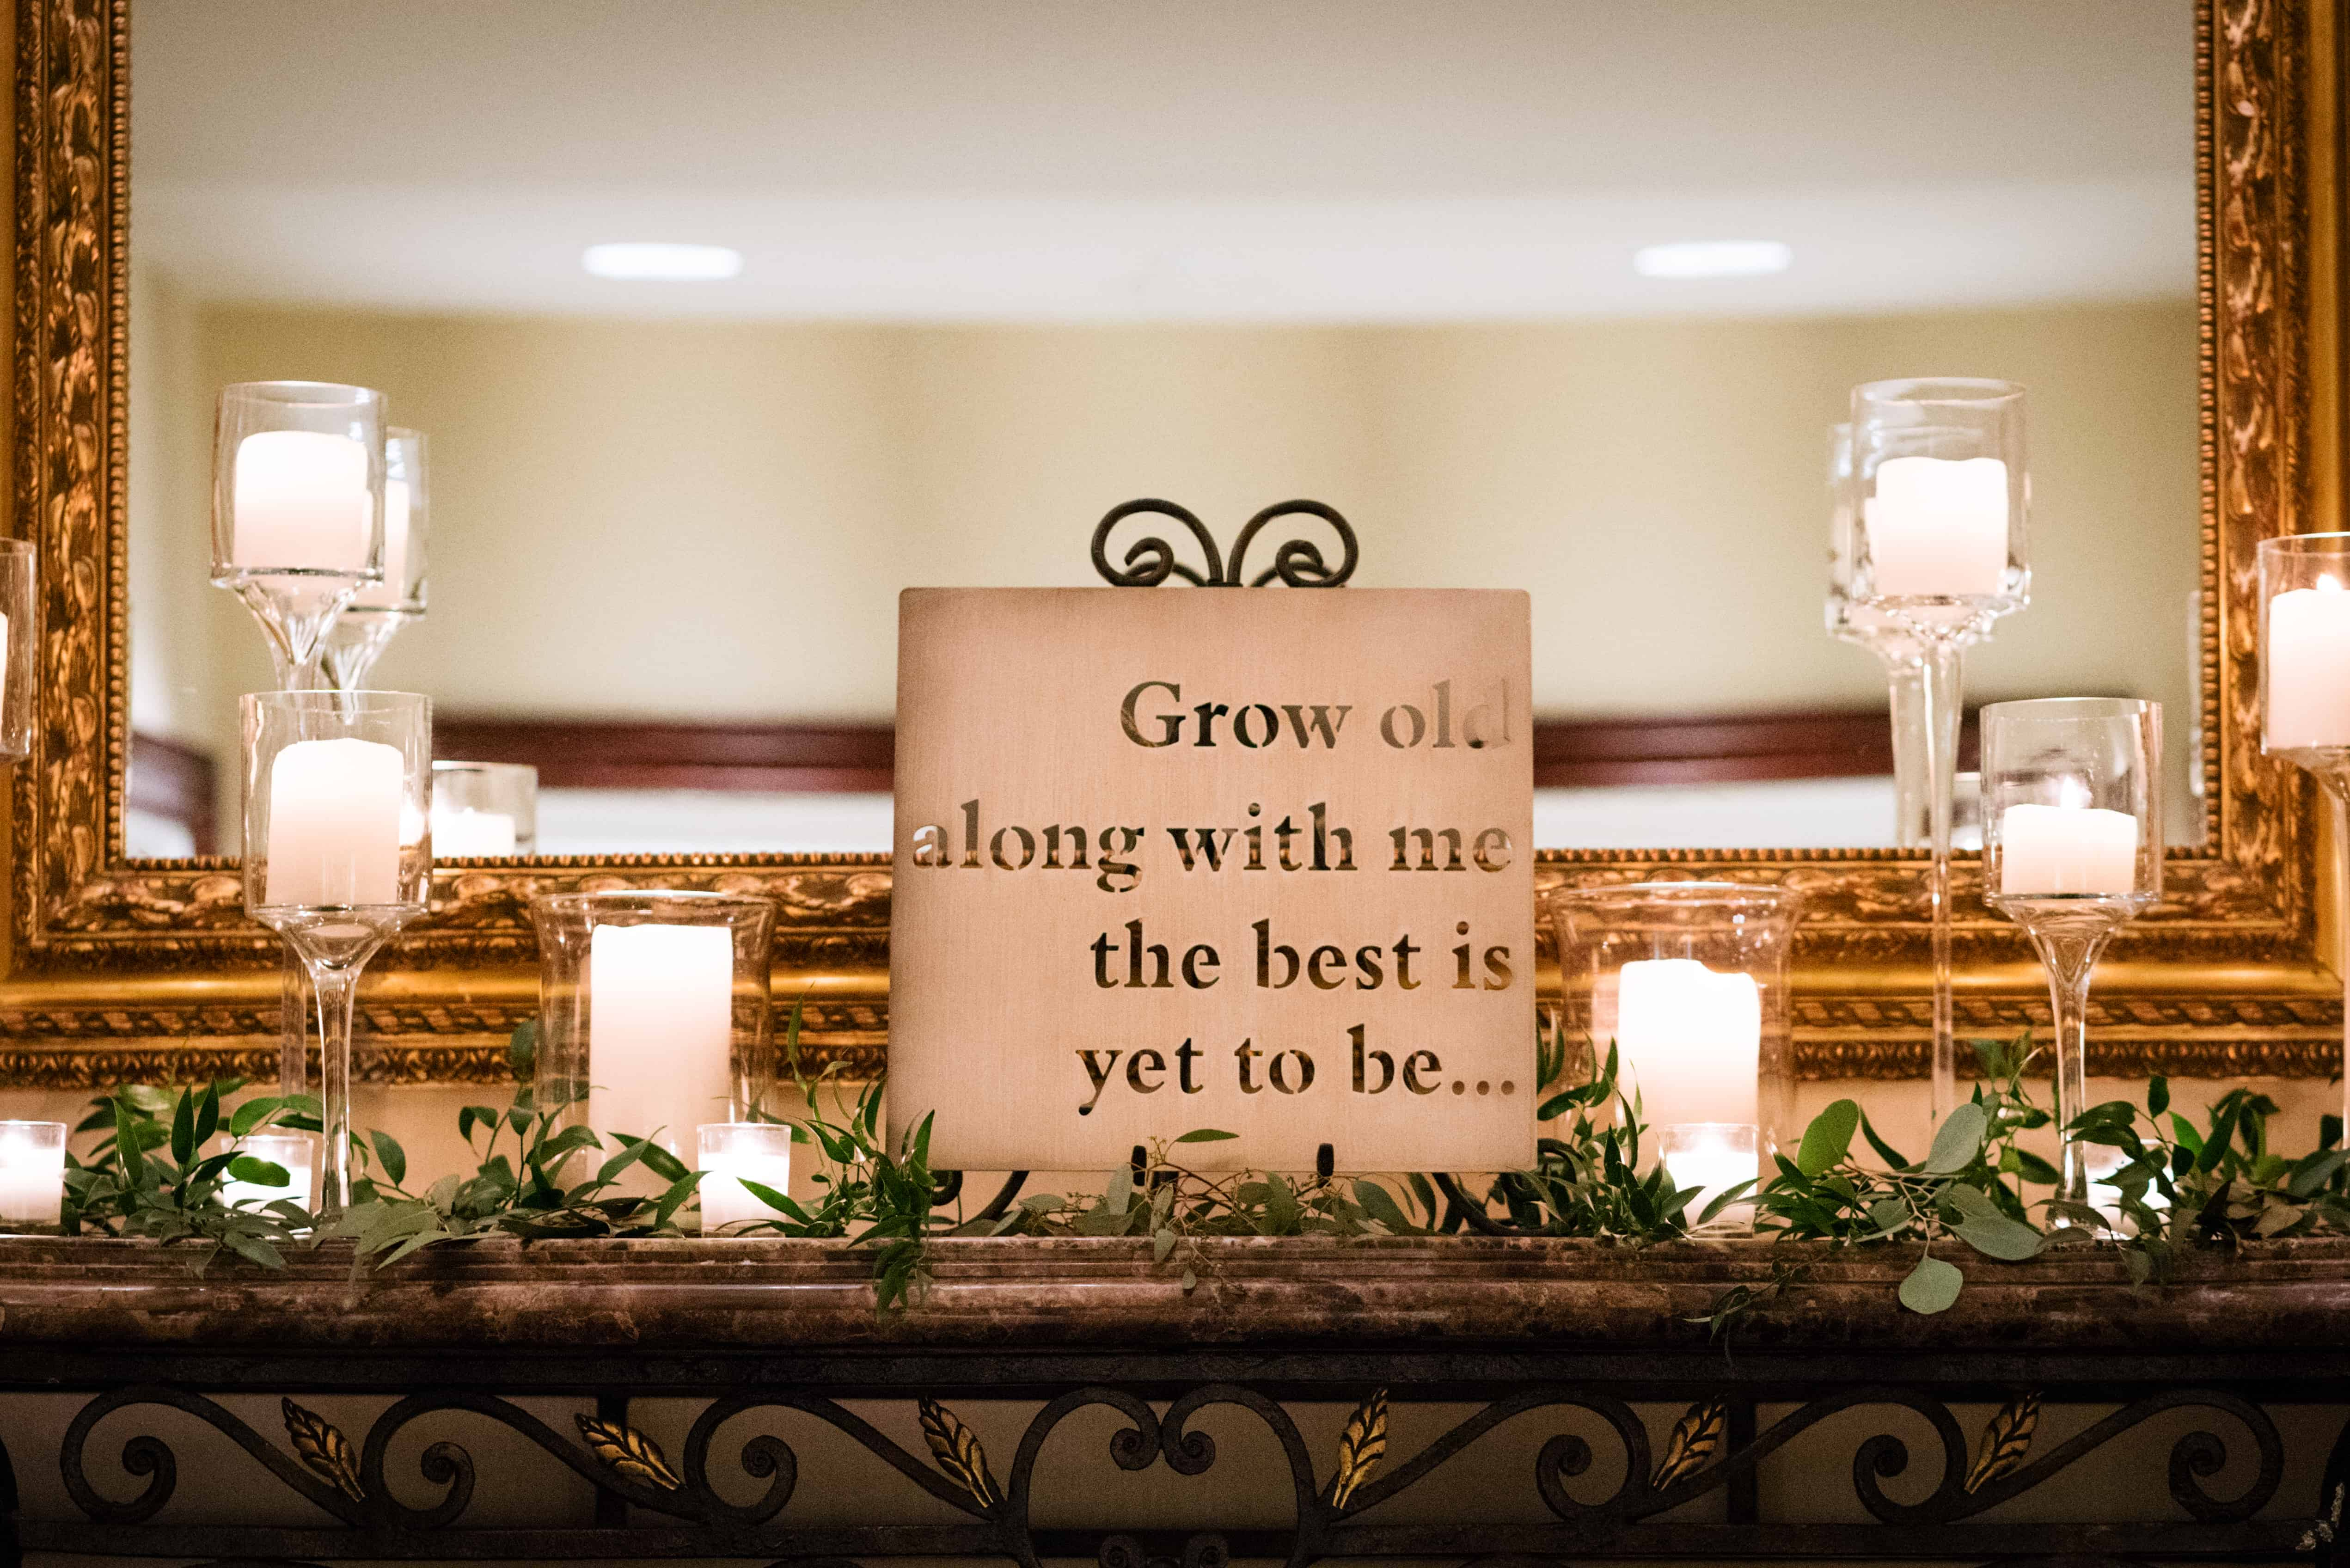 Grow old along with me, the best is yet to be sign at Nassau Inn Princeton NJ wedding